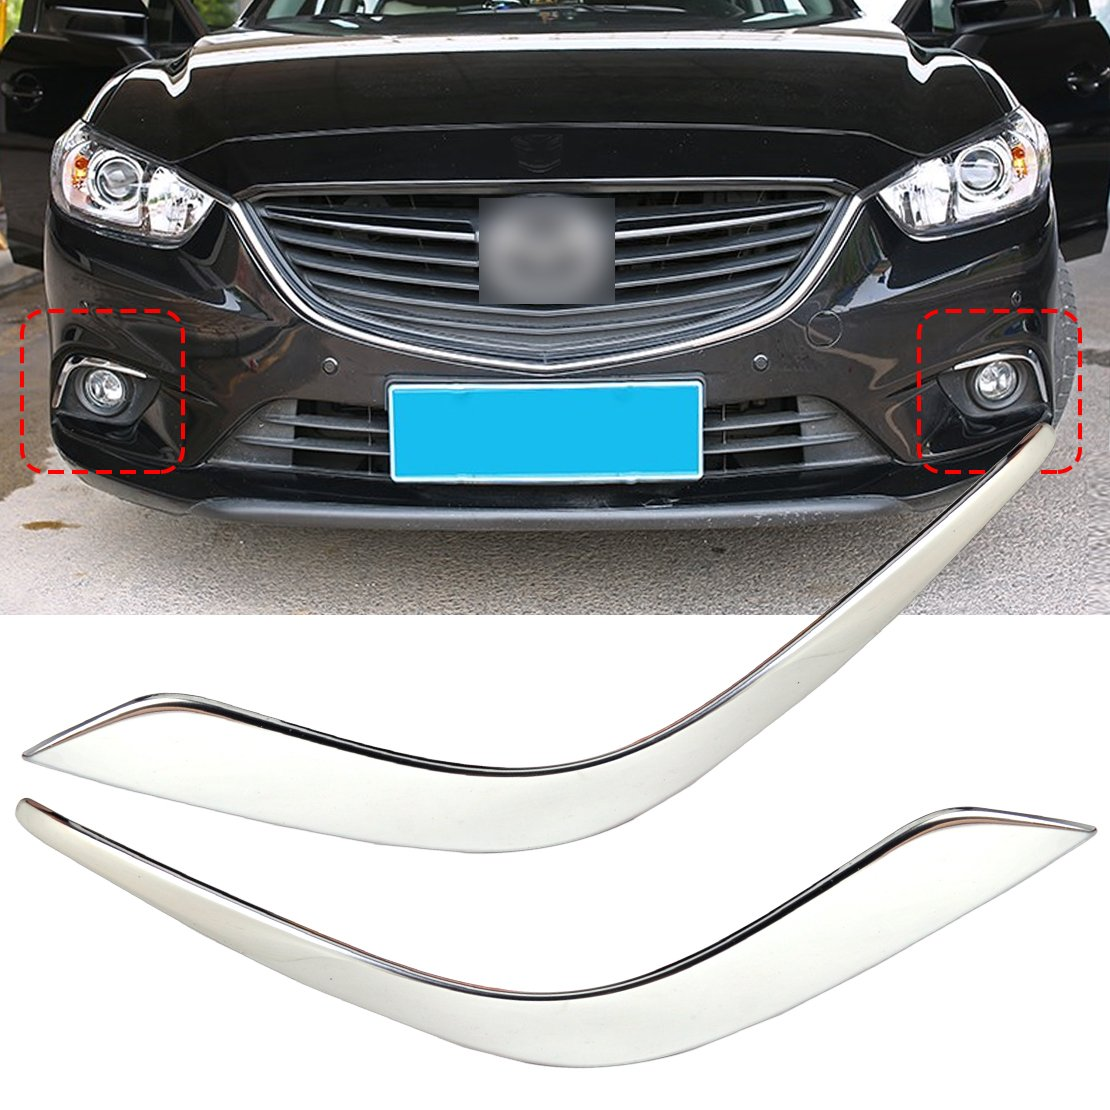 beler Chrome Finish Front Fog Light Lamp Eyebrow Trim Cover Decoration Decor For Mazda 6 Atenza 2013-2016 hermeshine